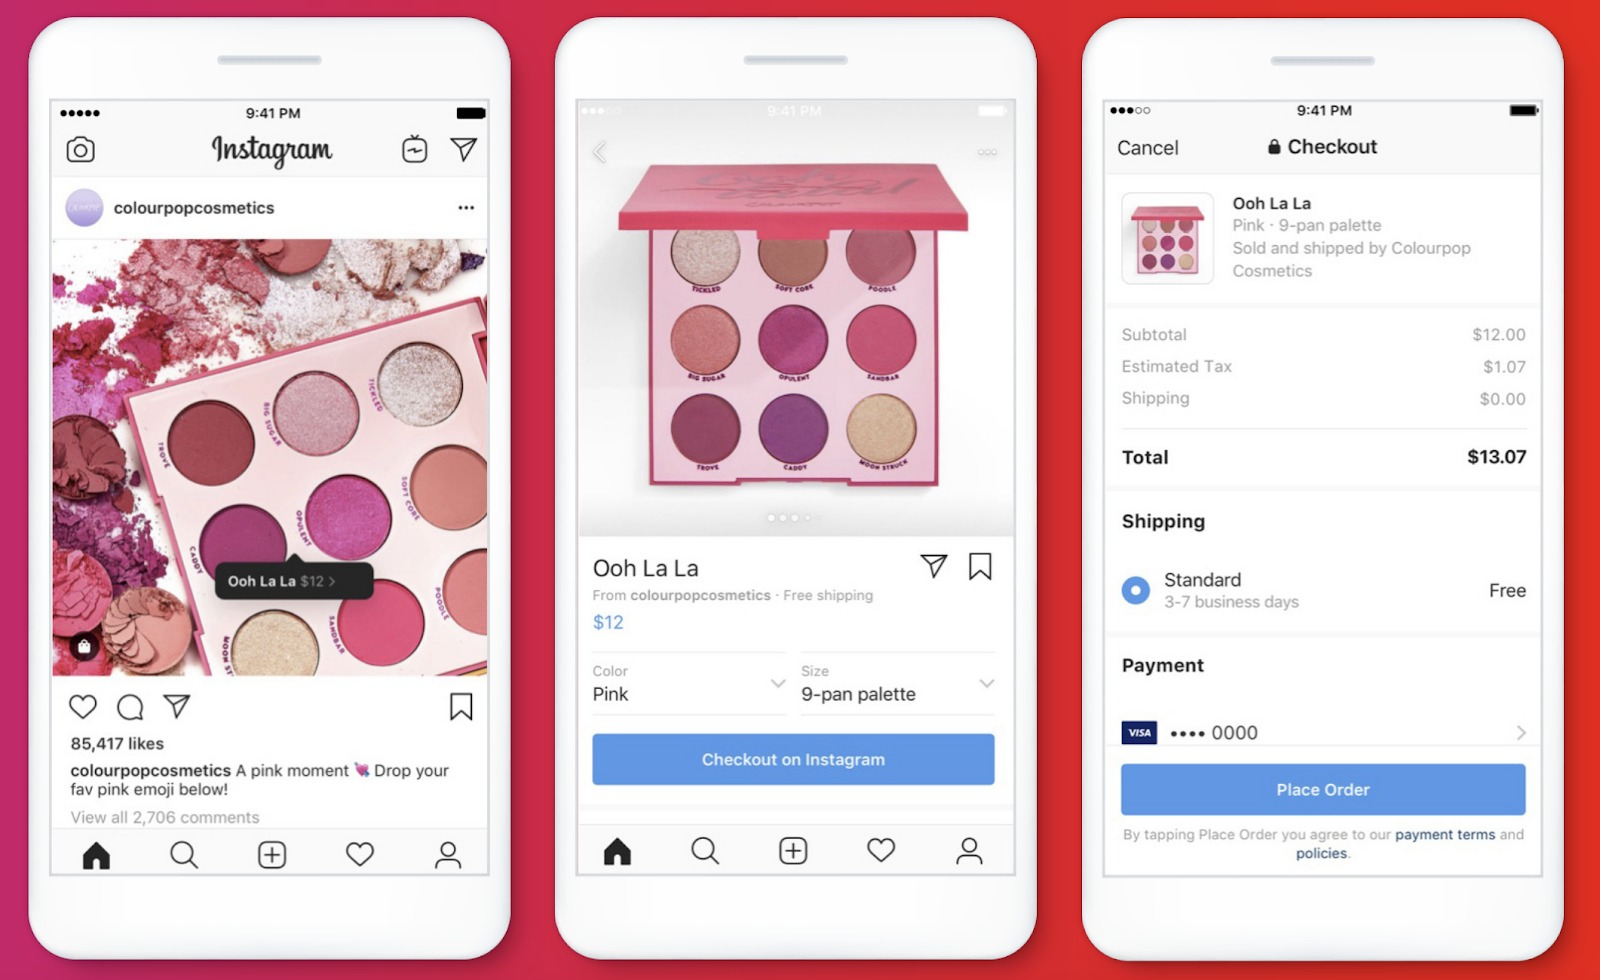 Instagram Checkout Example